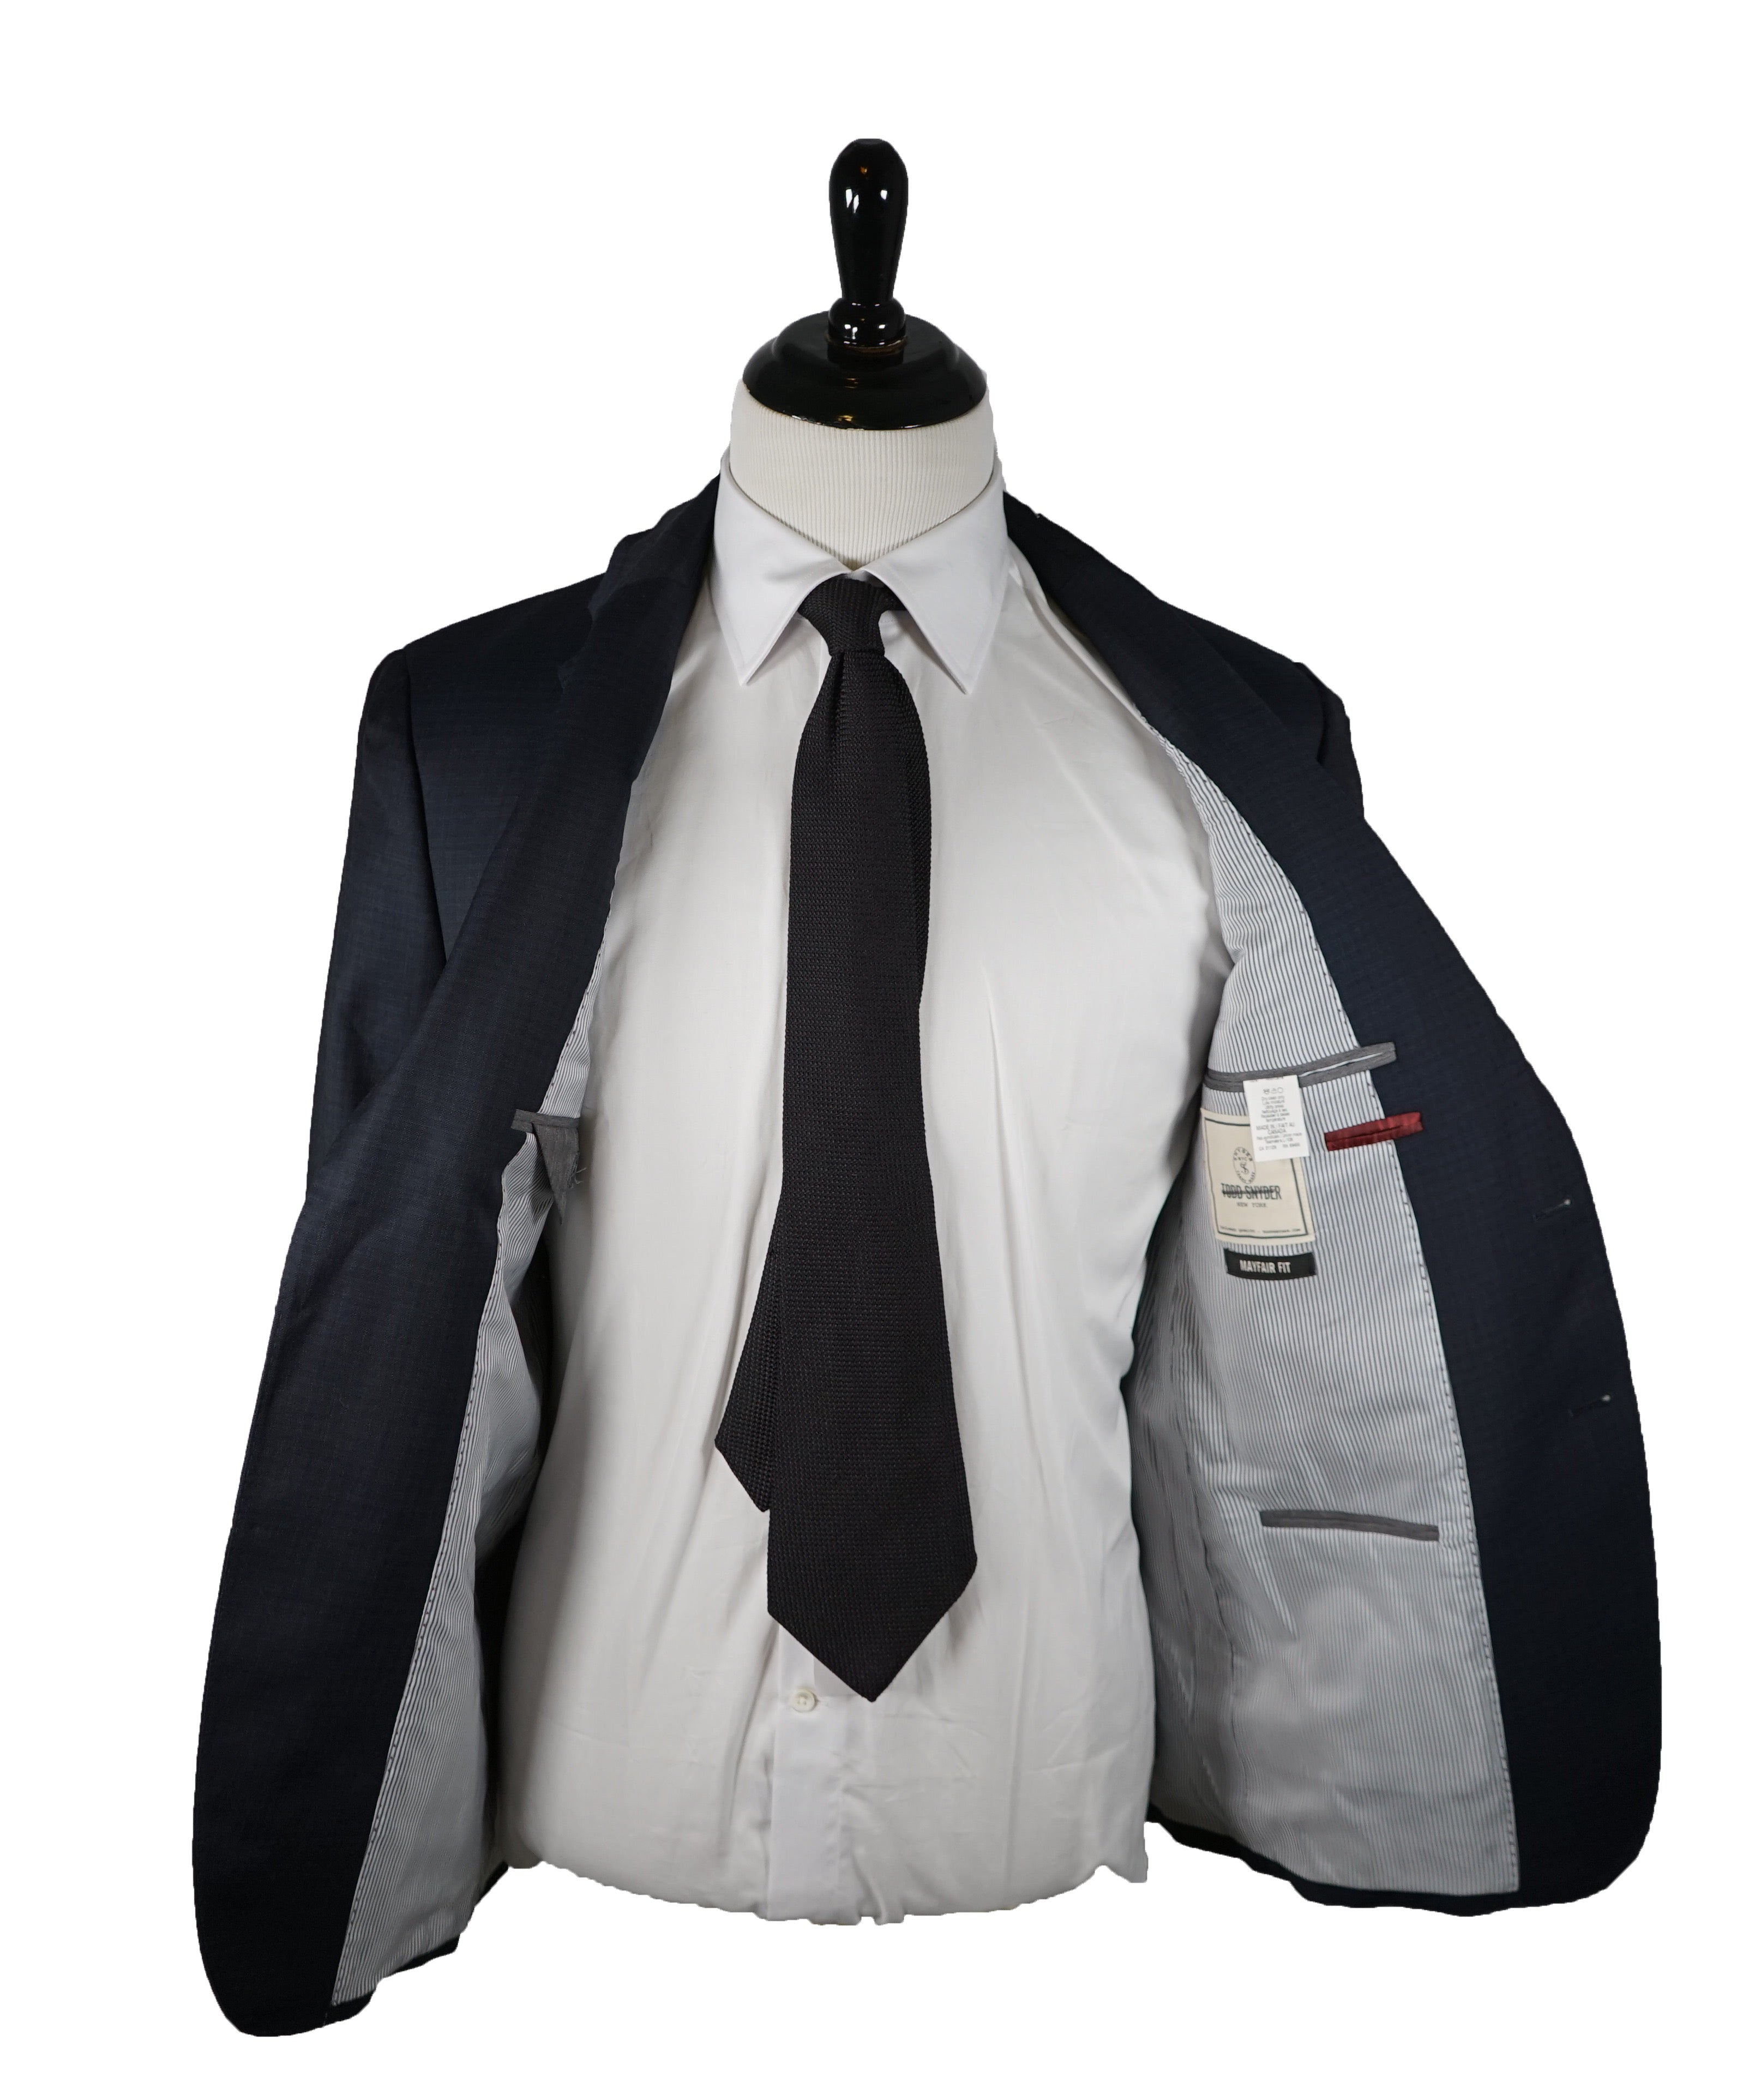 "TODD SNYDER - ""Mayfair Fit"" Check Suit In Blue & Gray - 38R"